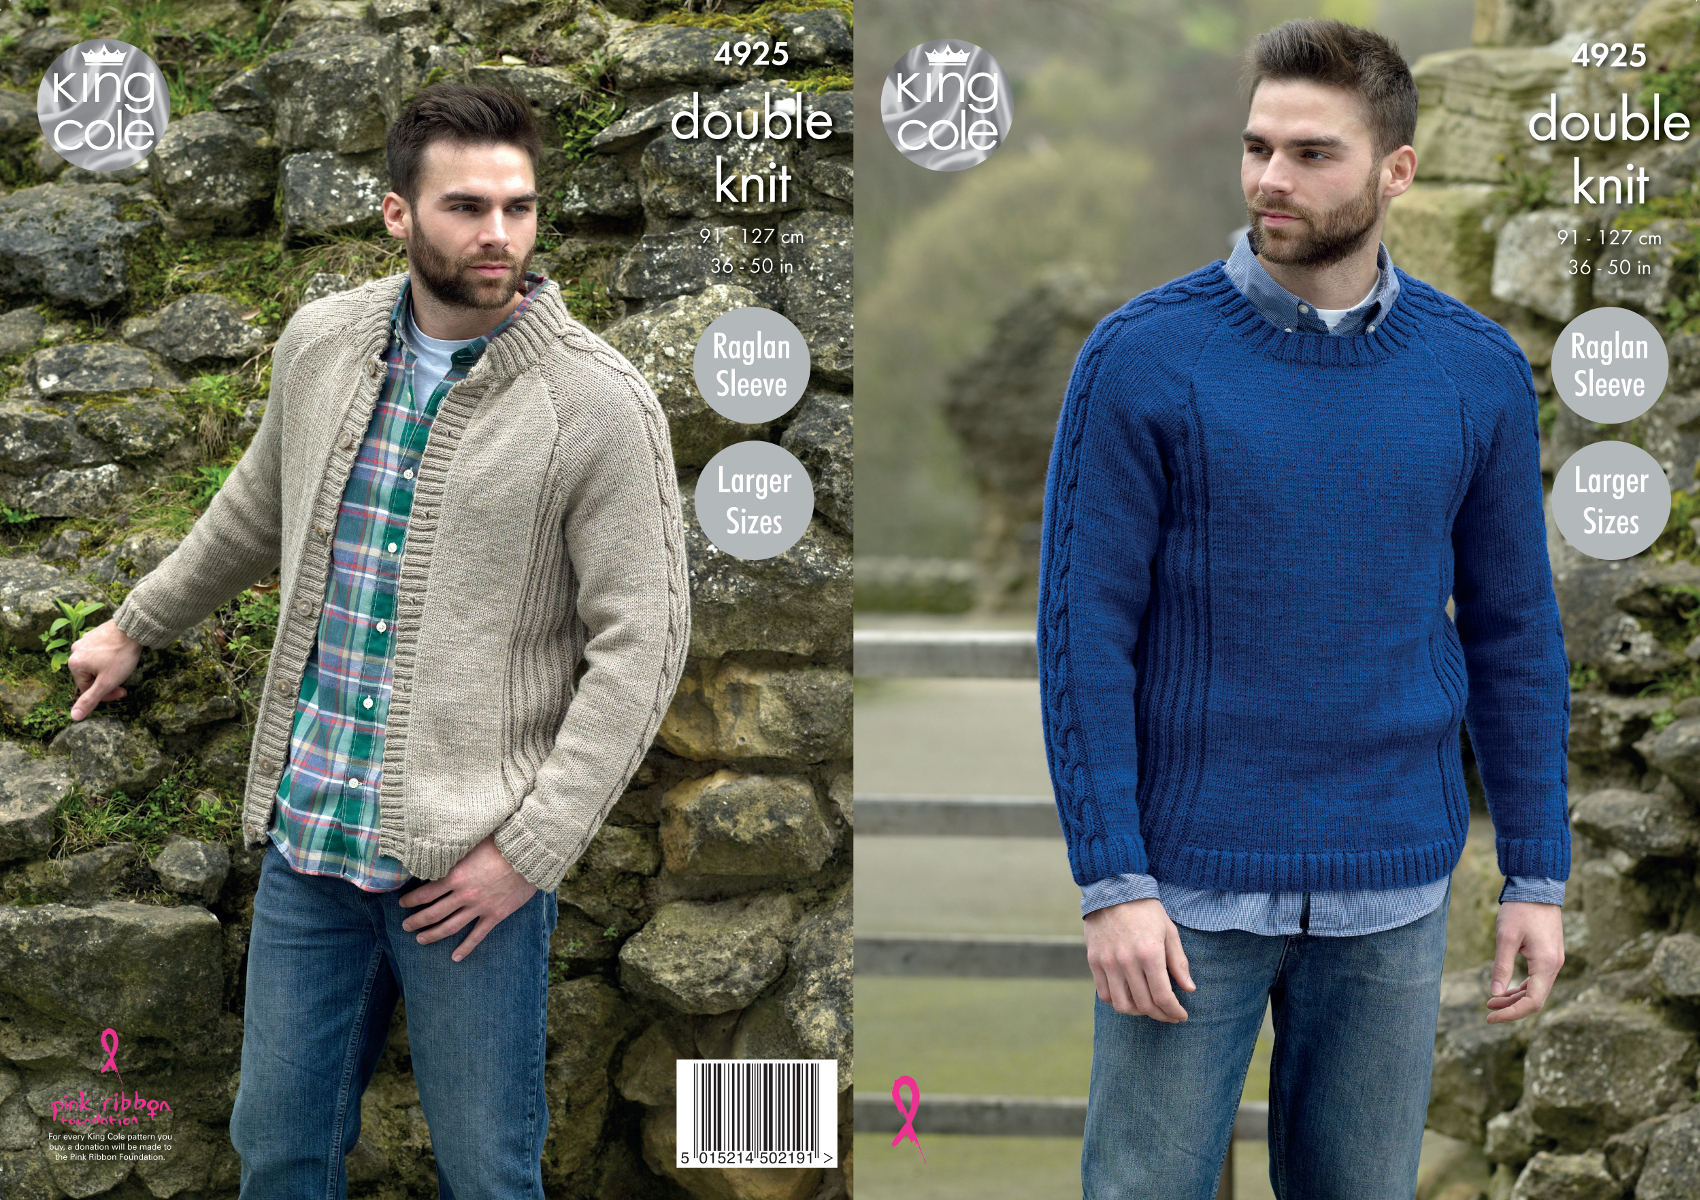 Knitting Pattern Mens Cardigan Details About Mens Double Knitting Pattern King Cole Raglan Sleeve Ribbed Cardigan Jumper 4925